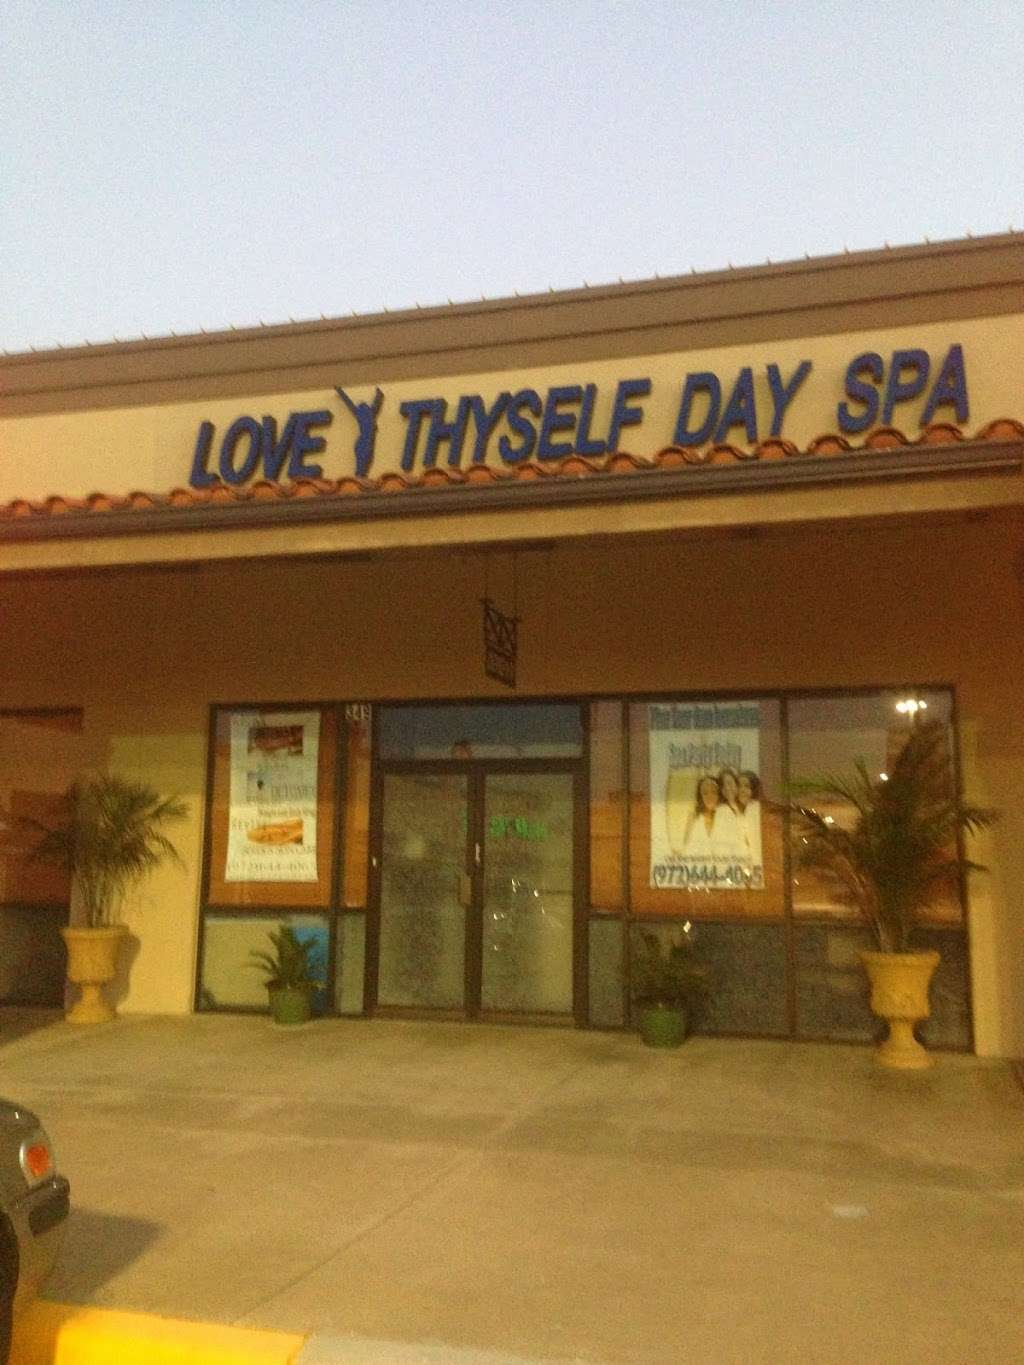 Love Thyself Day Spa - spa  | Photo 7 of 8 | Address: 101 S Coit Rd #349, Richardson, TX 75080, USA | Phone: (972) 644-4065